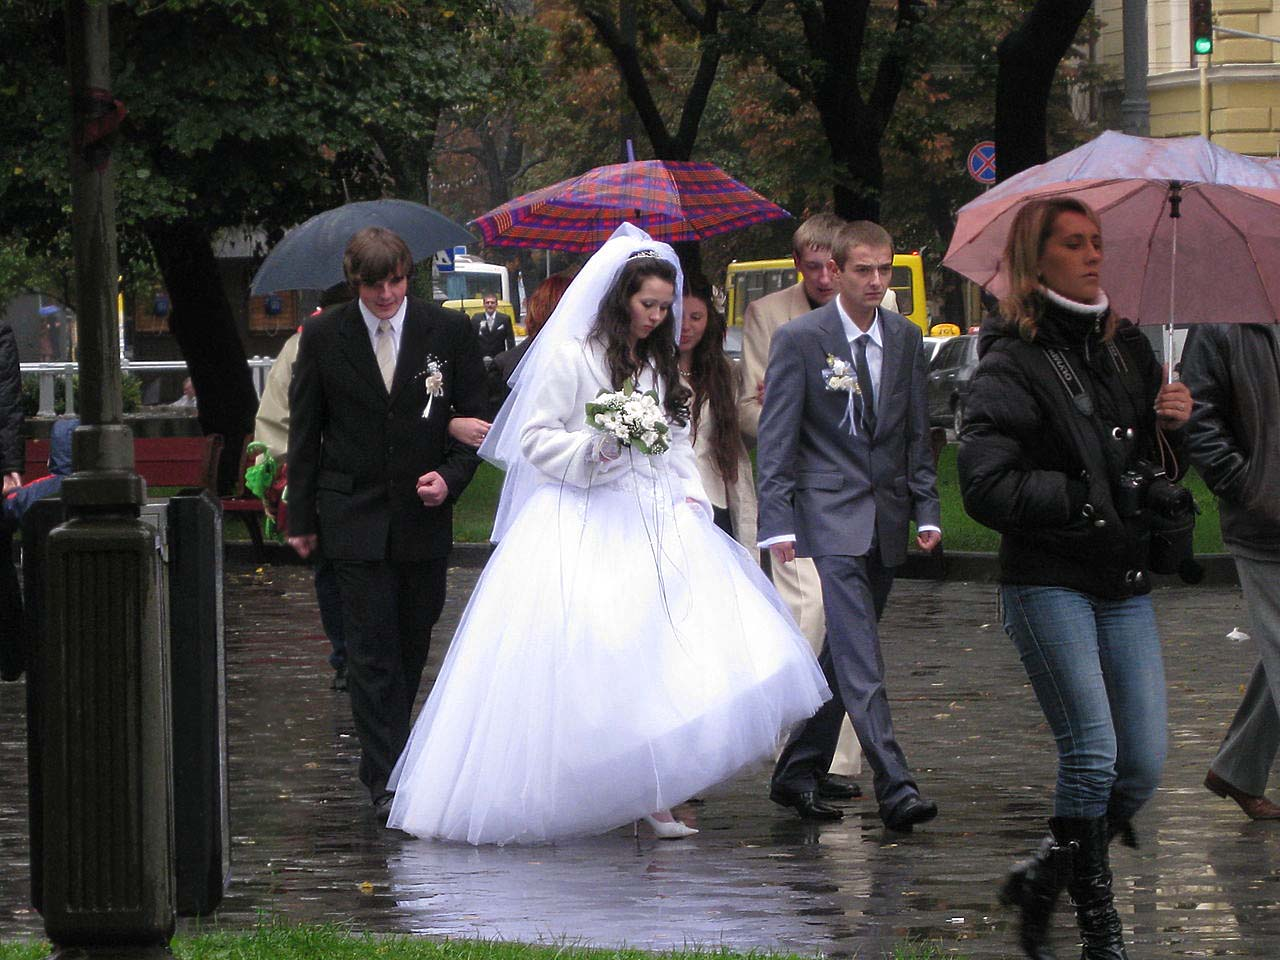 Ukrainian Bride, by Pieter & Renée Lanser,  20 sept. 2008